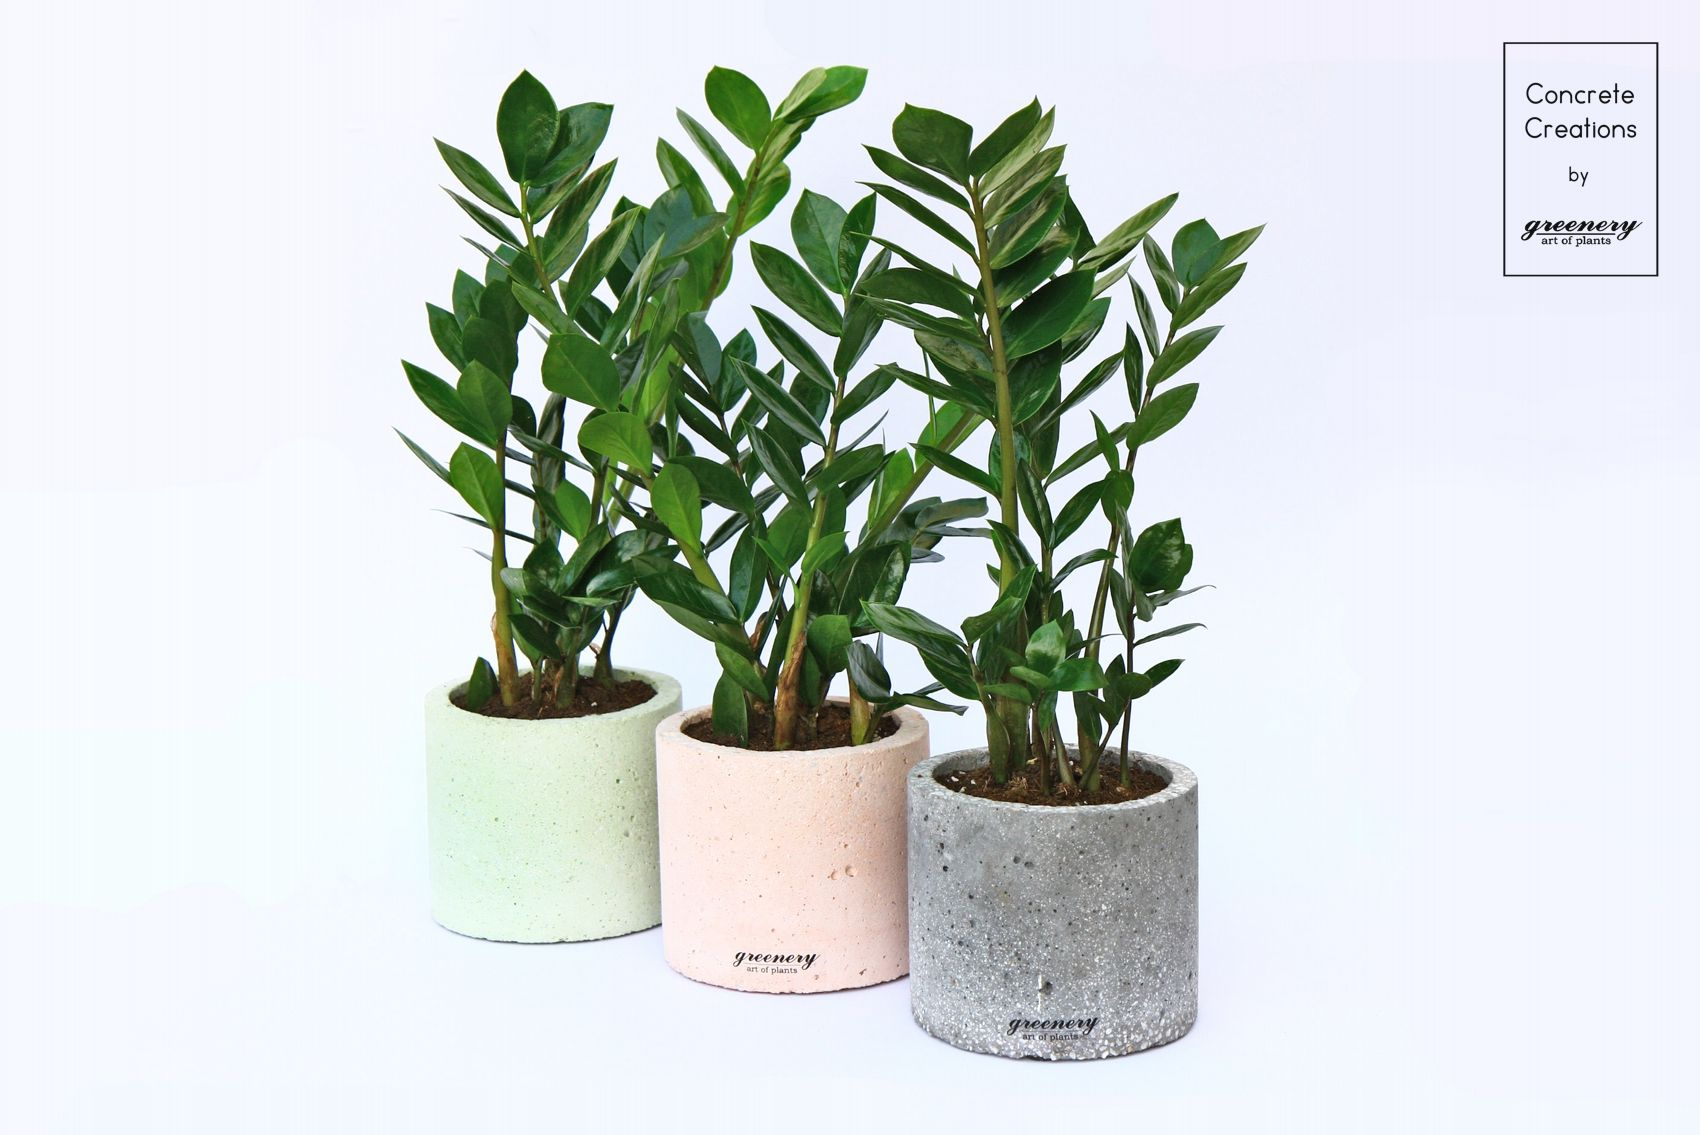 Concrete Cylindrical Pot With Crassula  Concrete Creations By Greenery